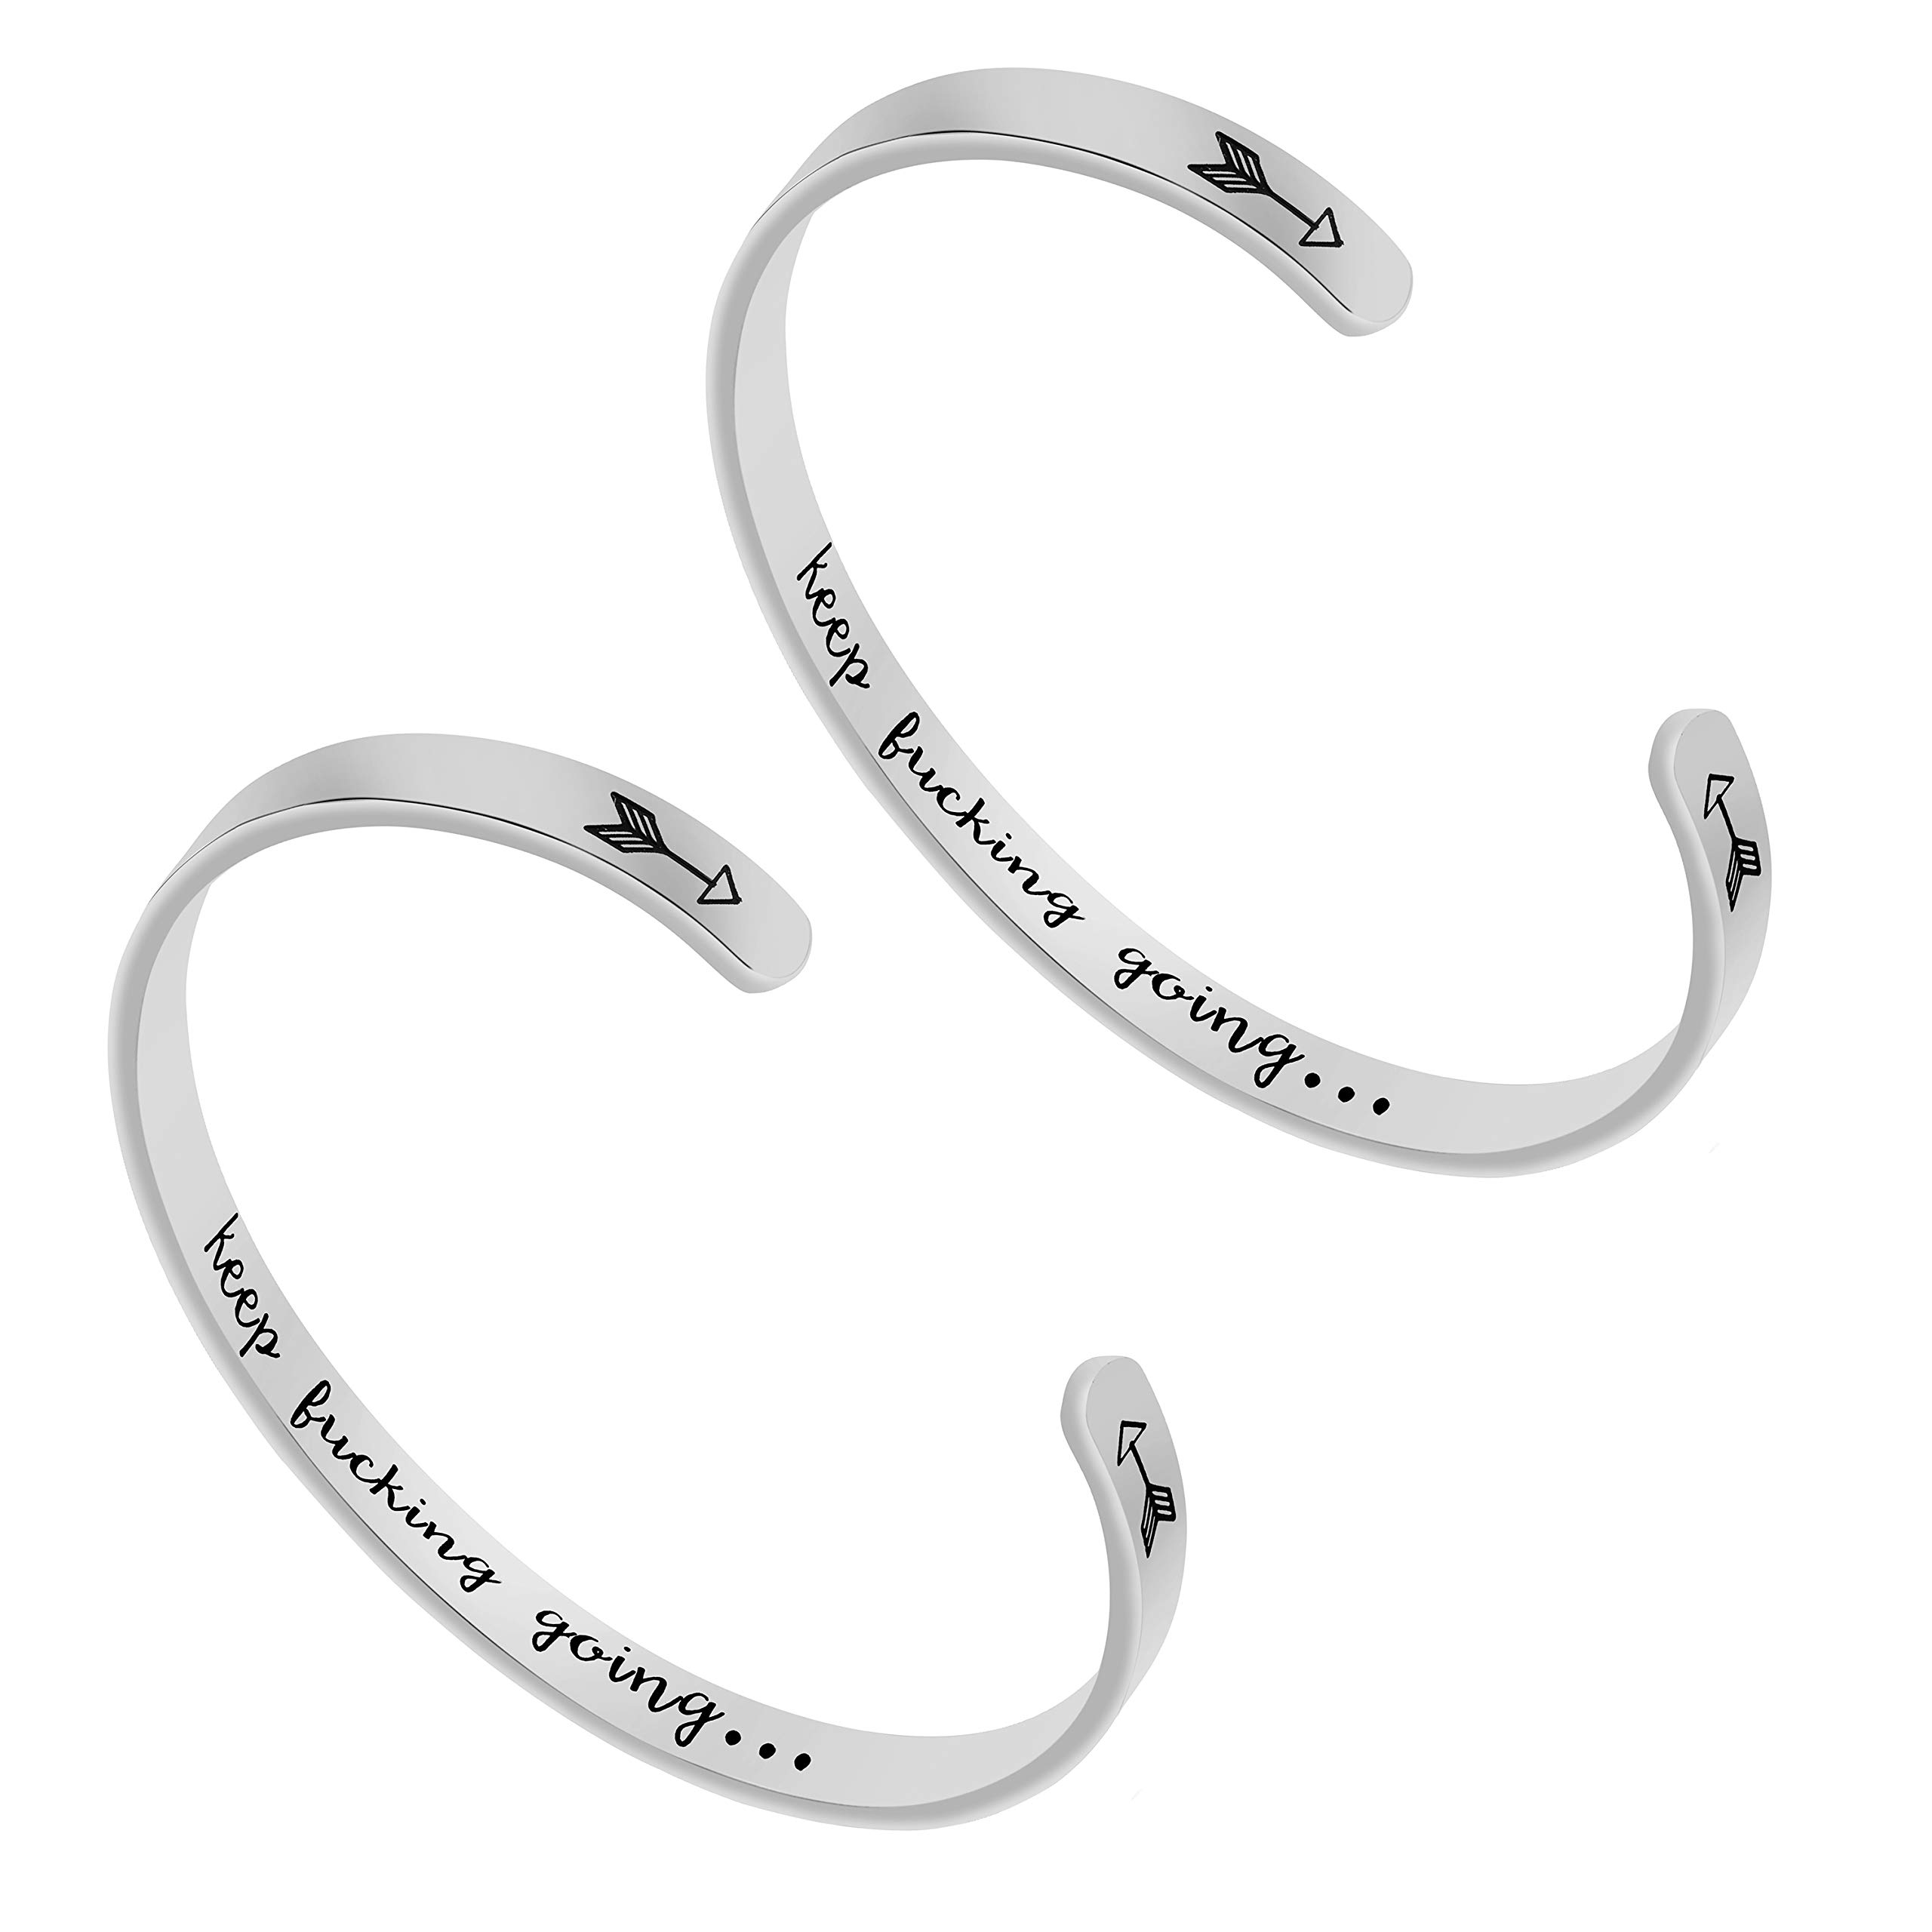 Fashionalife Inspirational Gifts for Women Cuff Bangle Bracelets Stainless Steel Jewelry Engraved Message